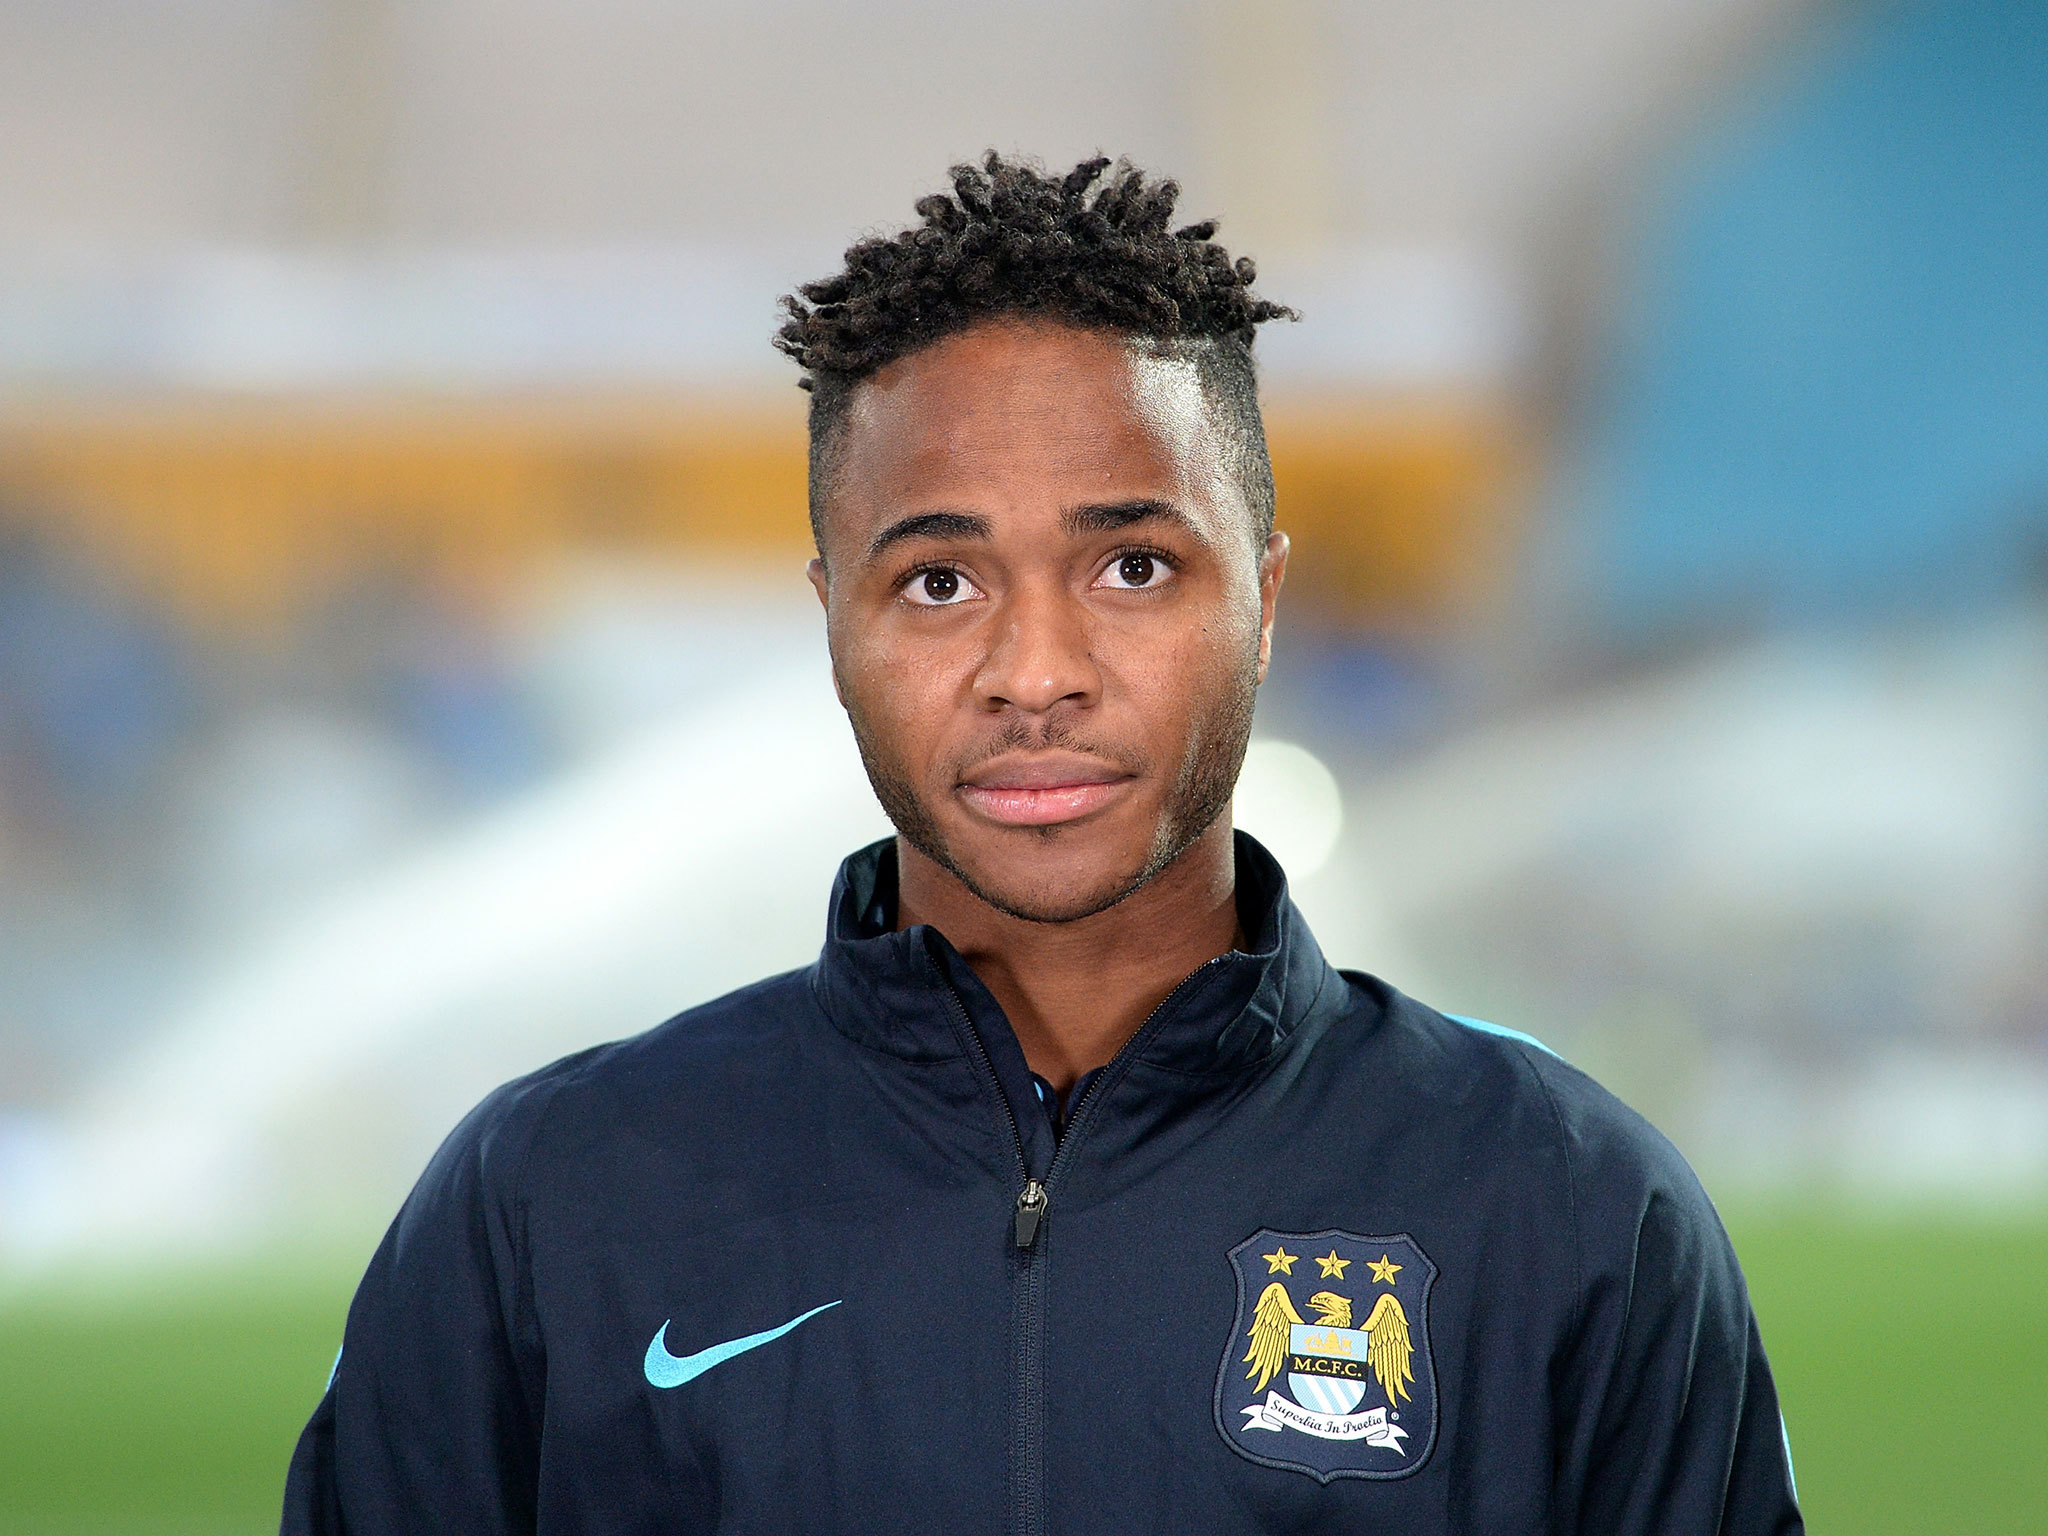 Raheem Sterling Wallpapers Images Photos Pictures Backgrounds